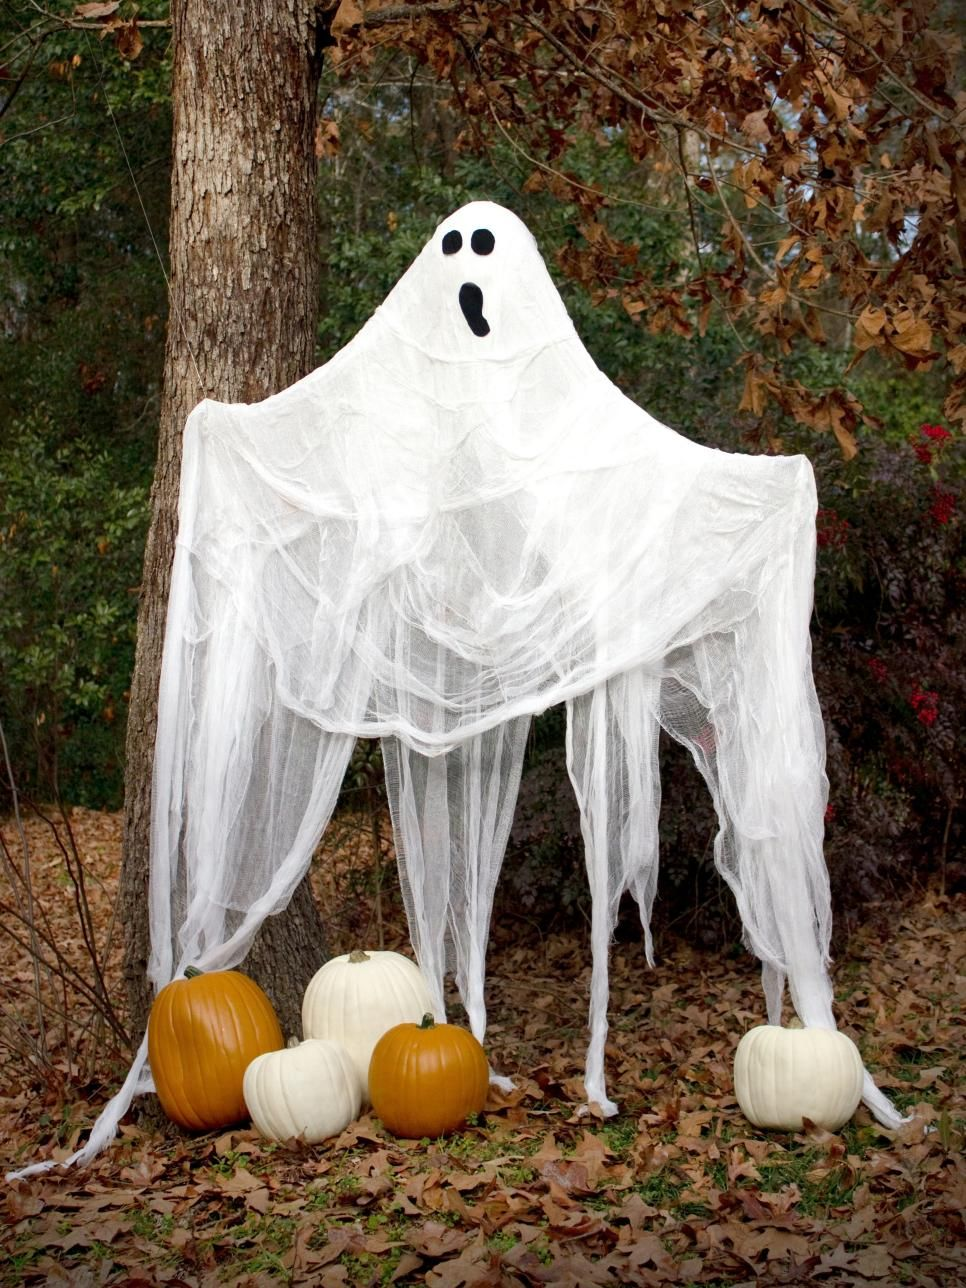 65+ DIY Halloween Decorations  Decorating Ideas Decoration - How To Make Halloween Decorations